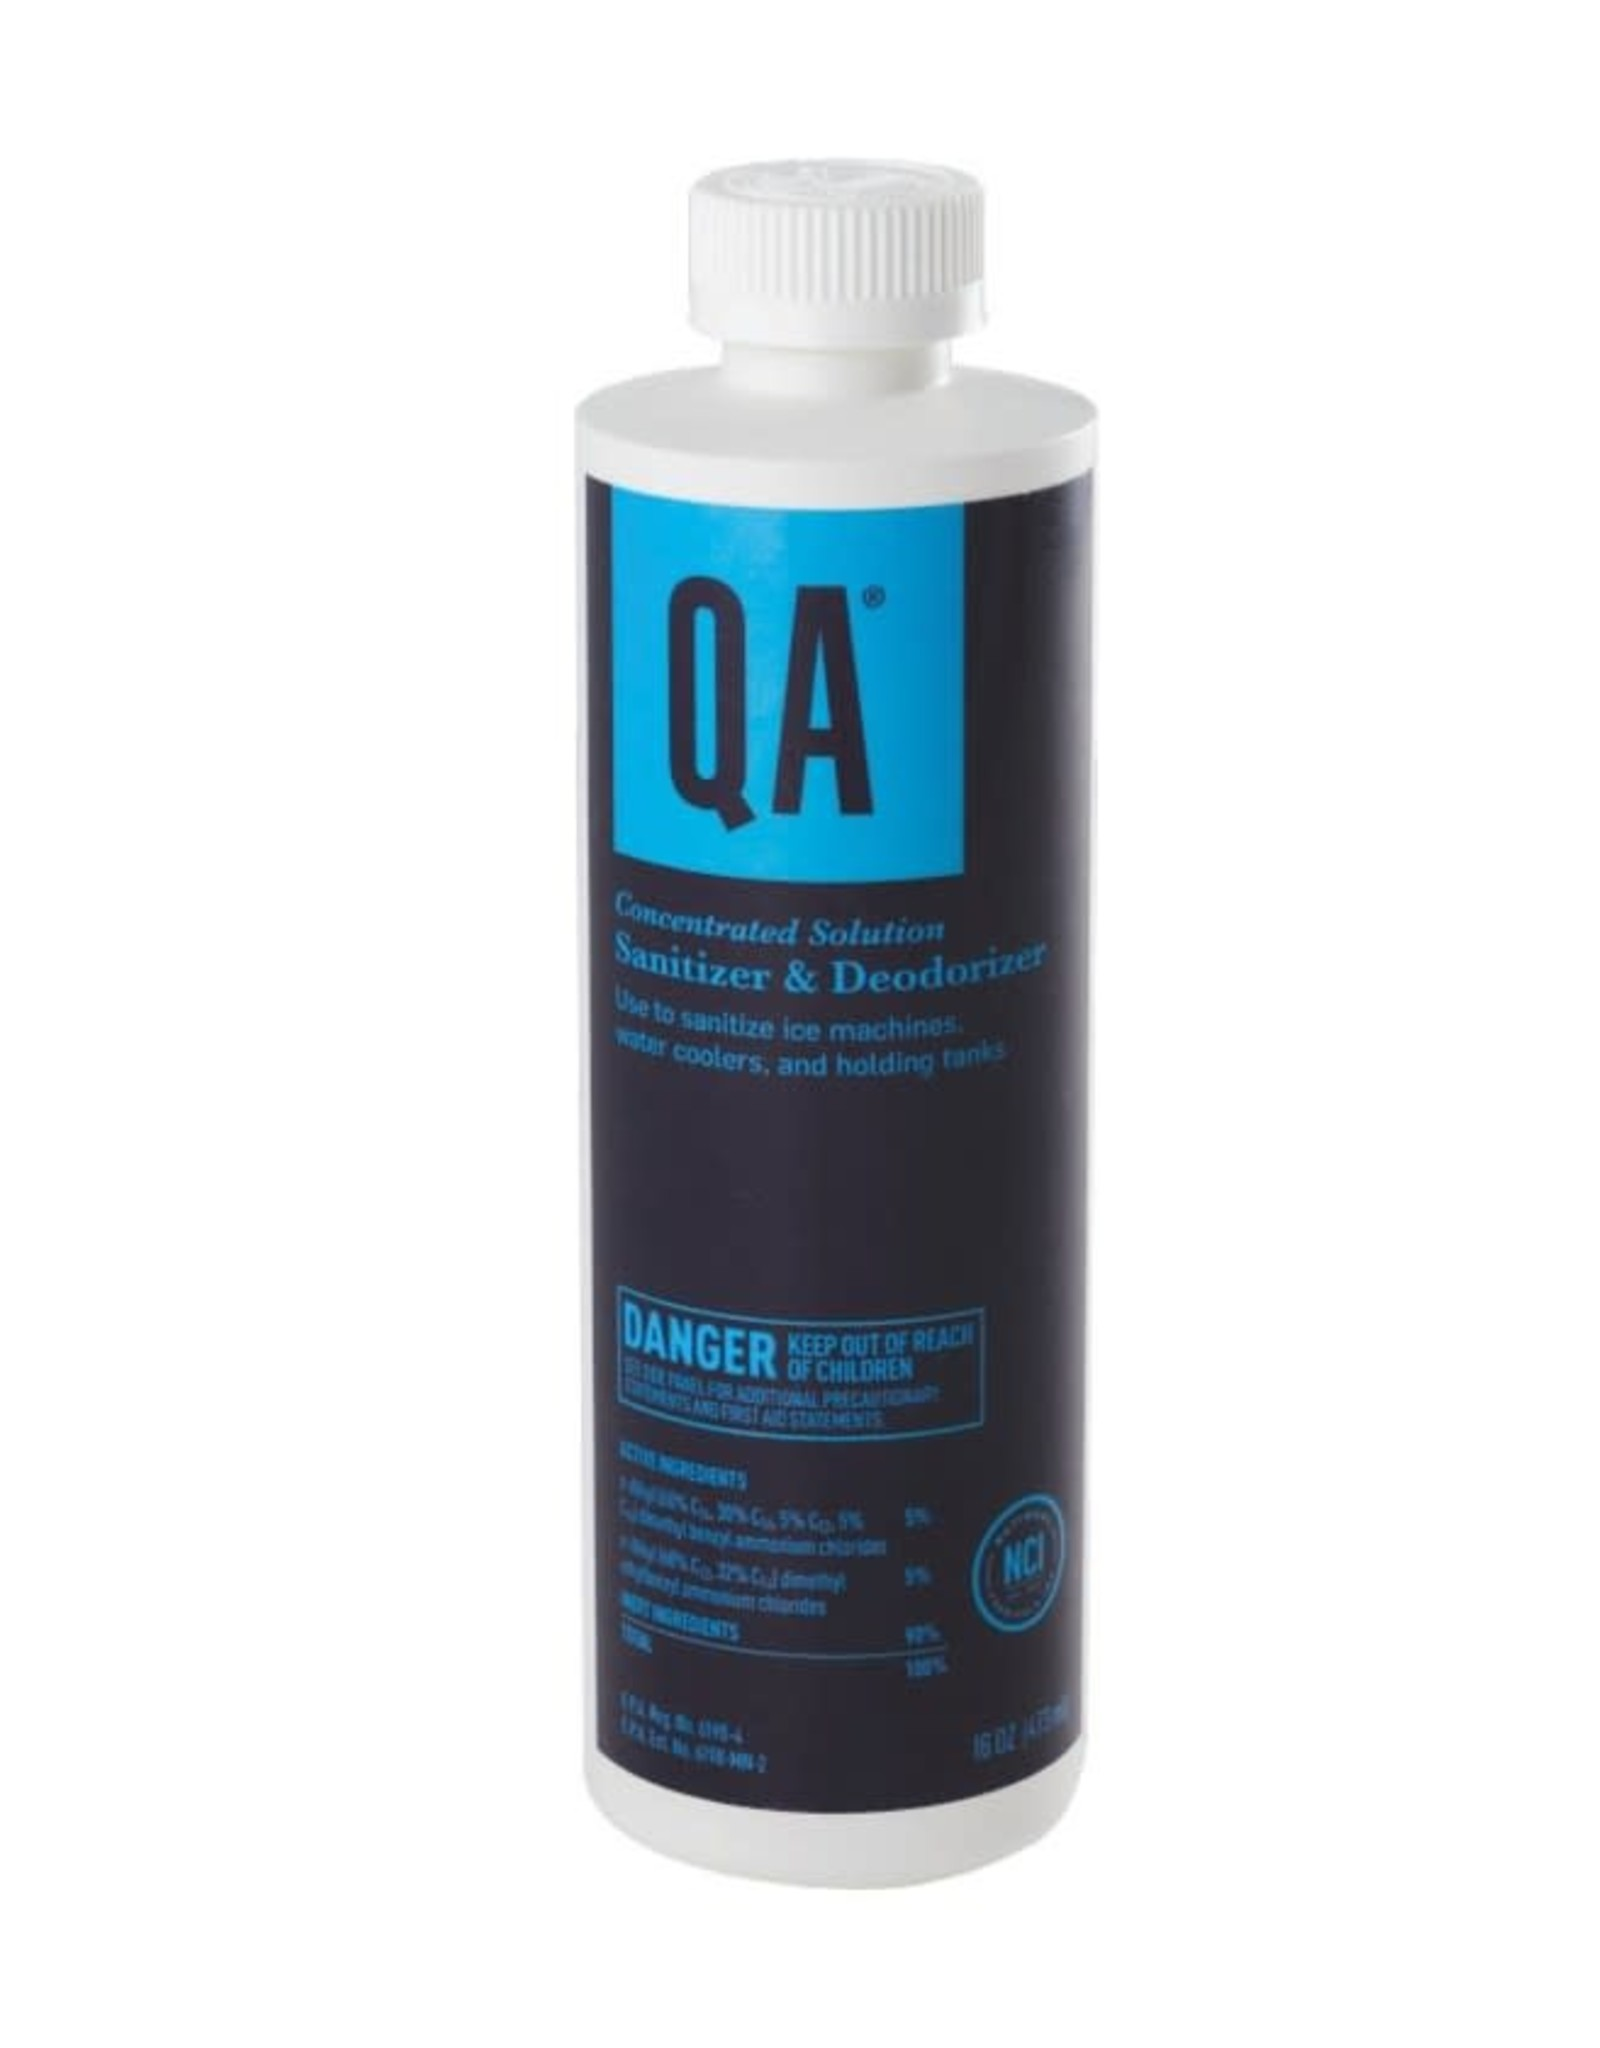 Q.A. Concentrated Solution 32 oz.